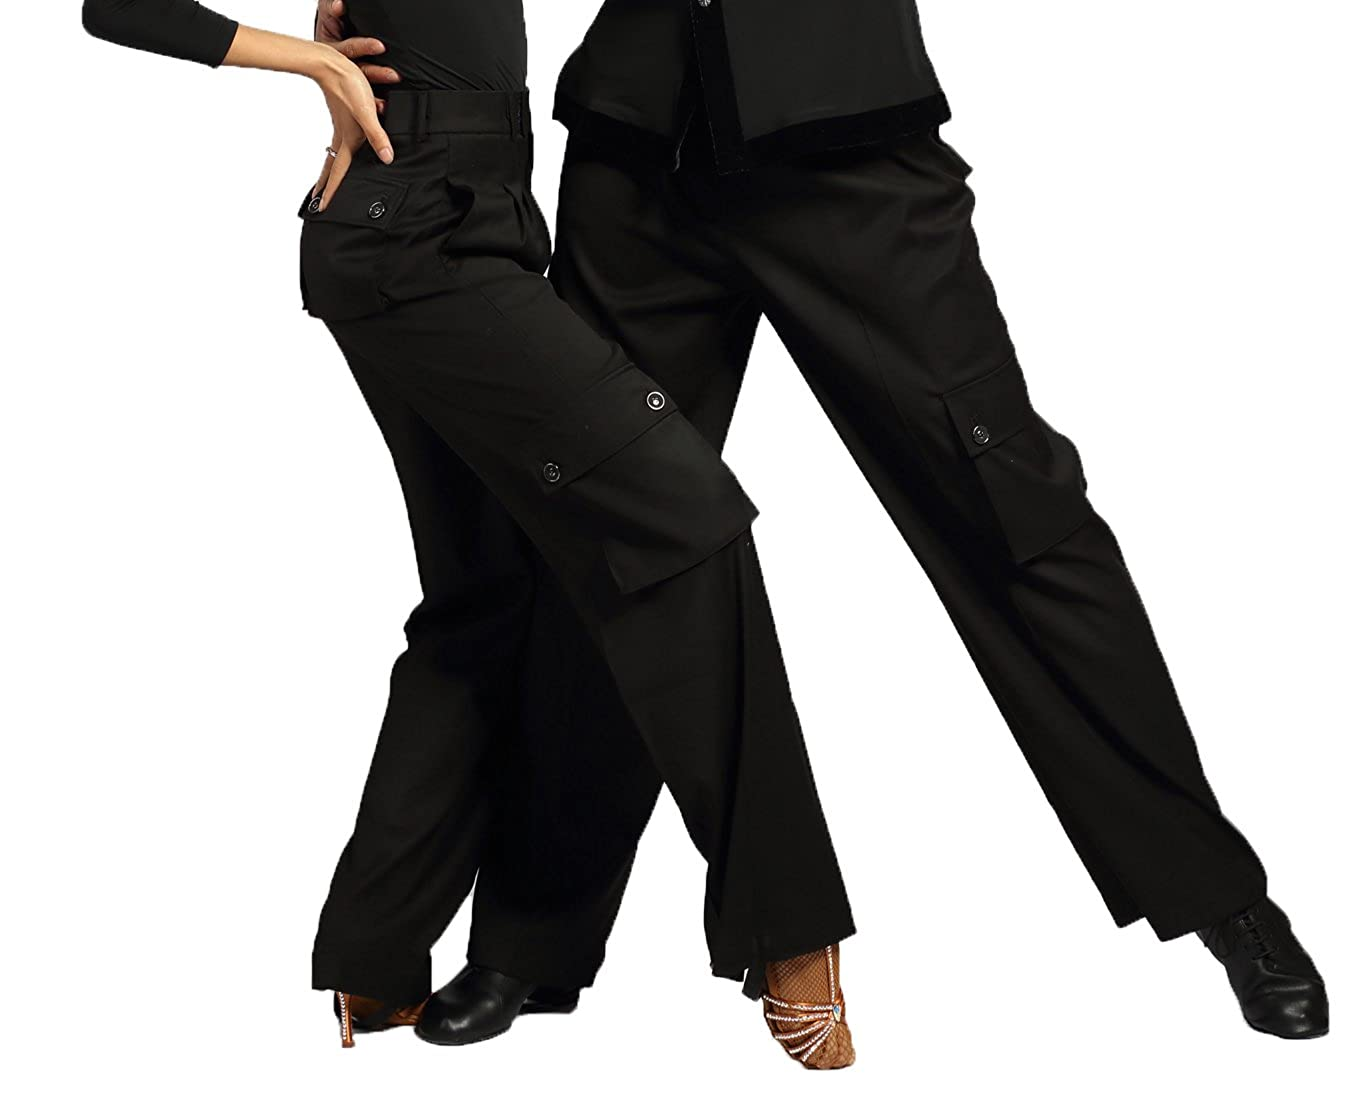 b618f6e2b3e46 G4005 Latin Modern Ballroom Dance Professional Straight Pocket Trousers  Pants for Men and Women